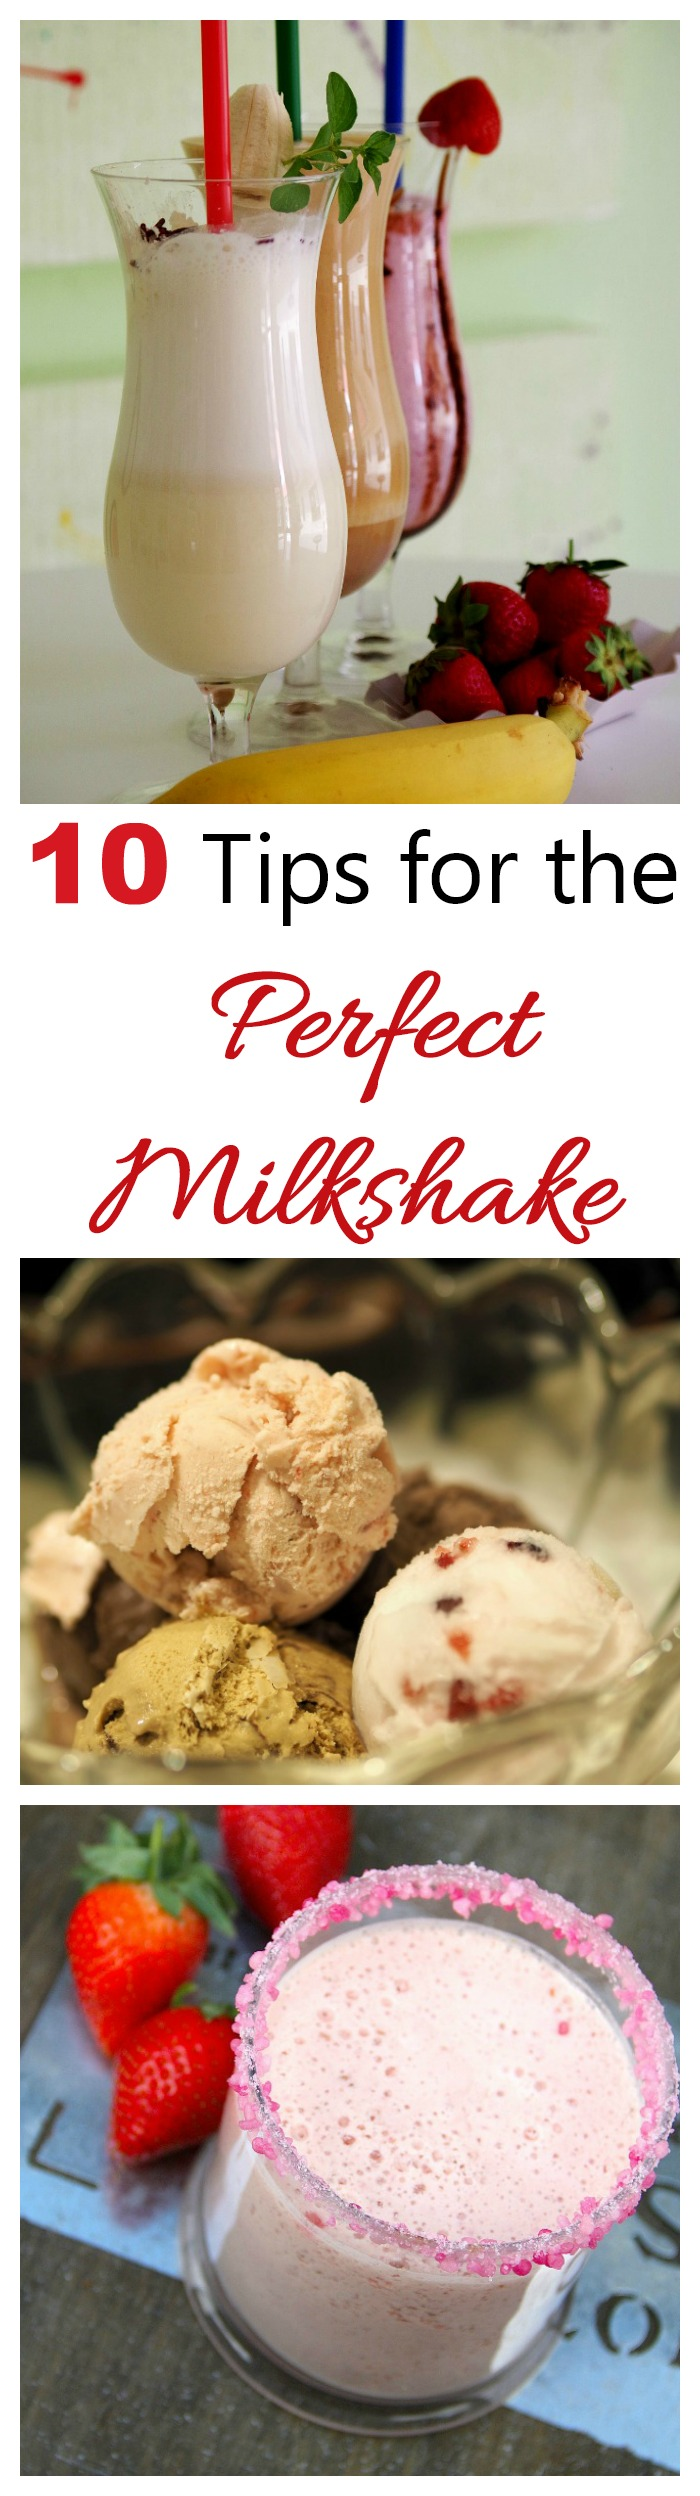 The perfect milkshake is possible with these easy tips